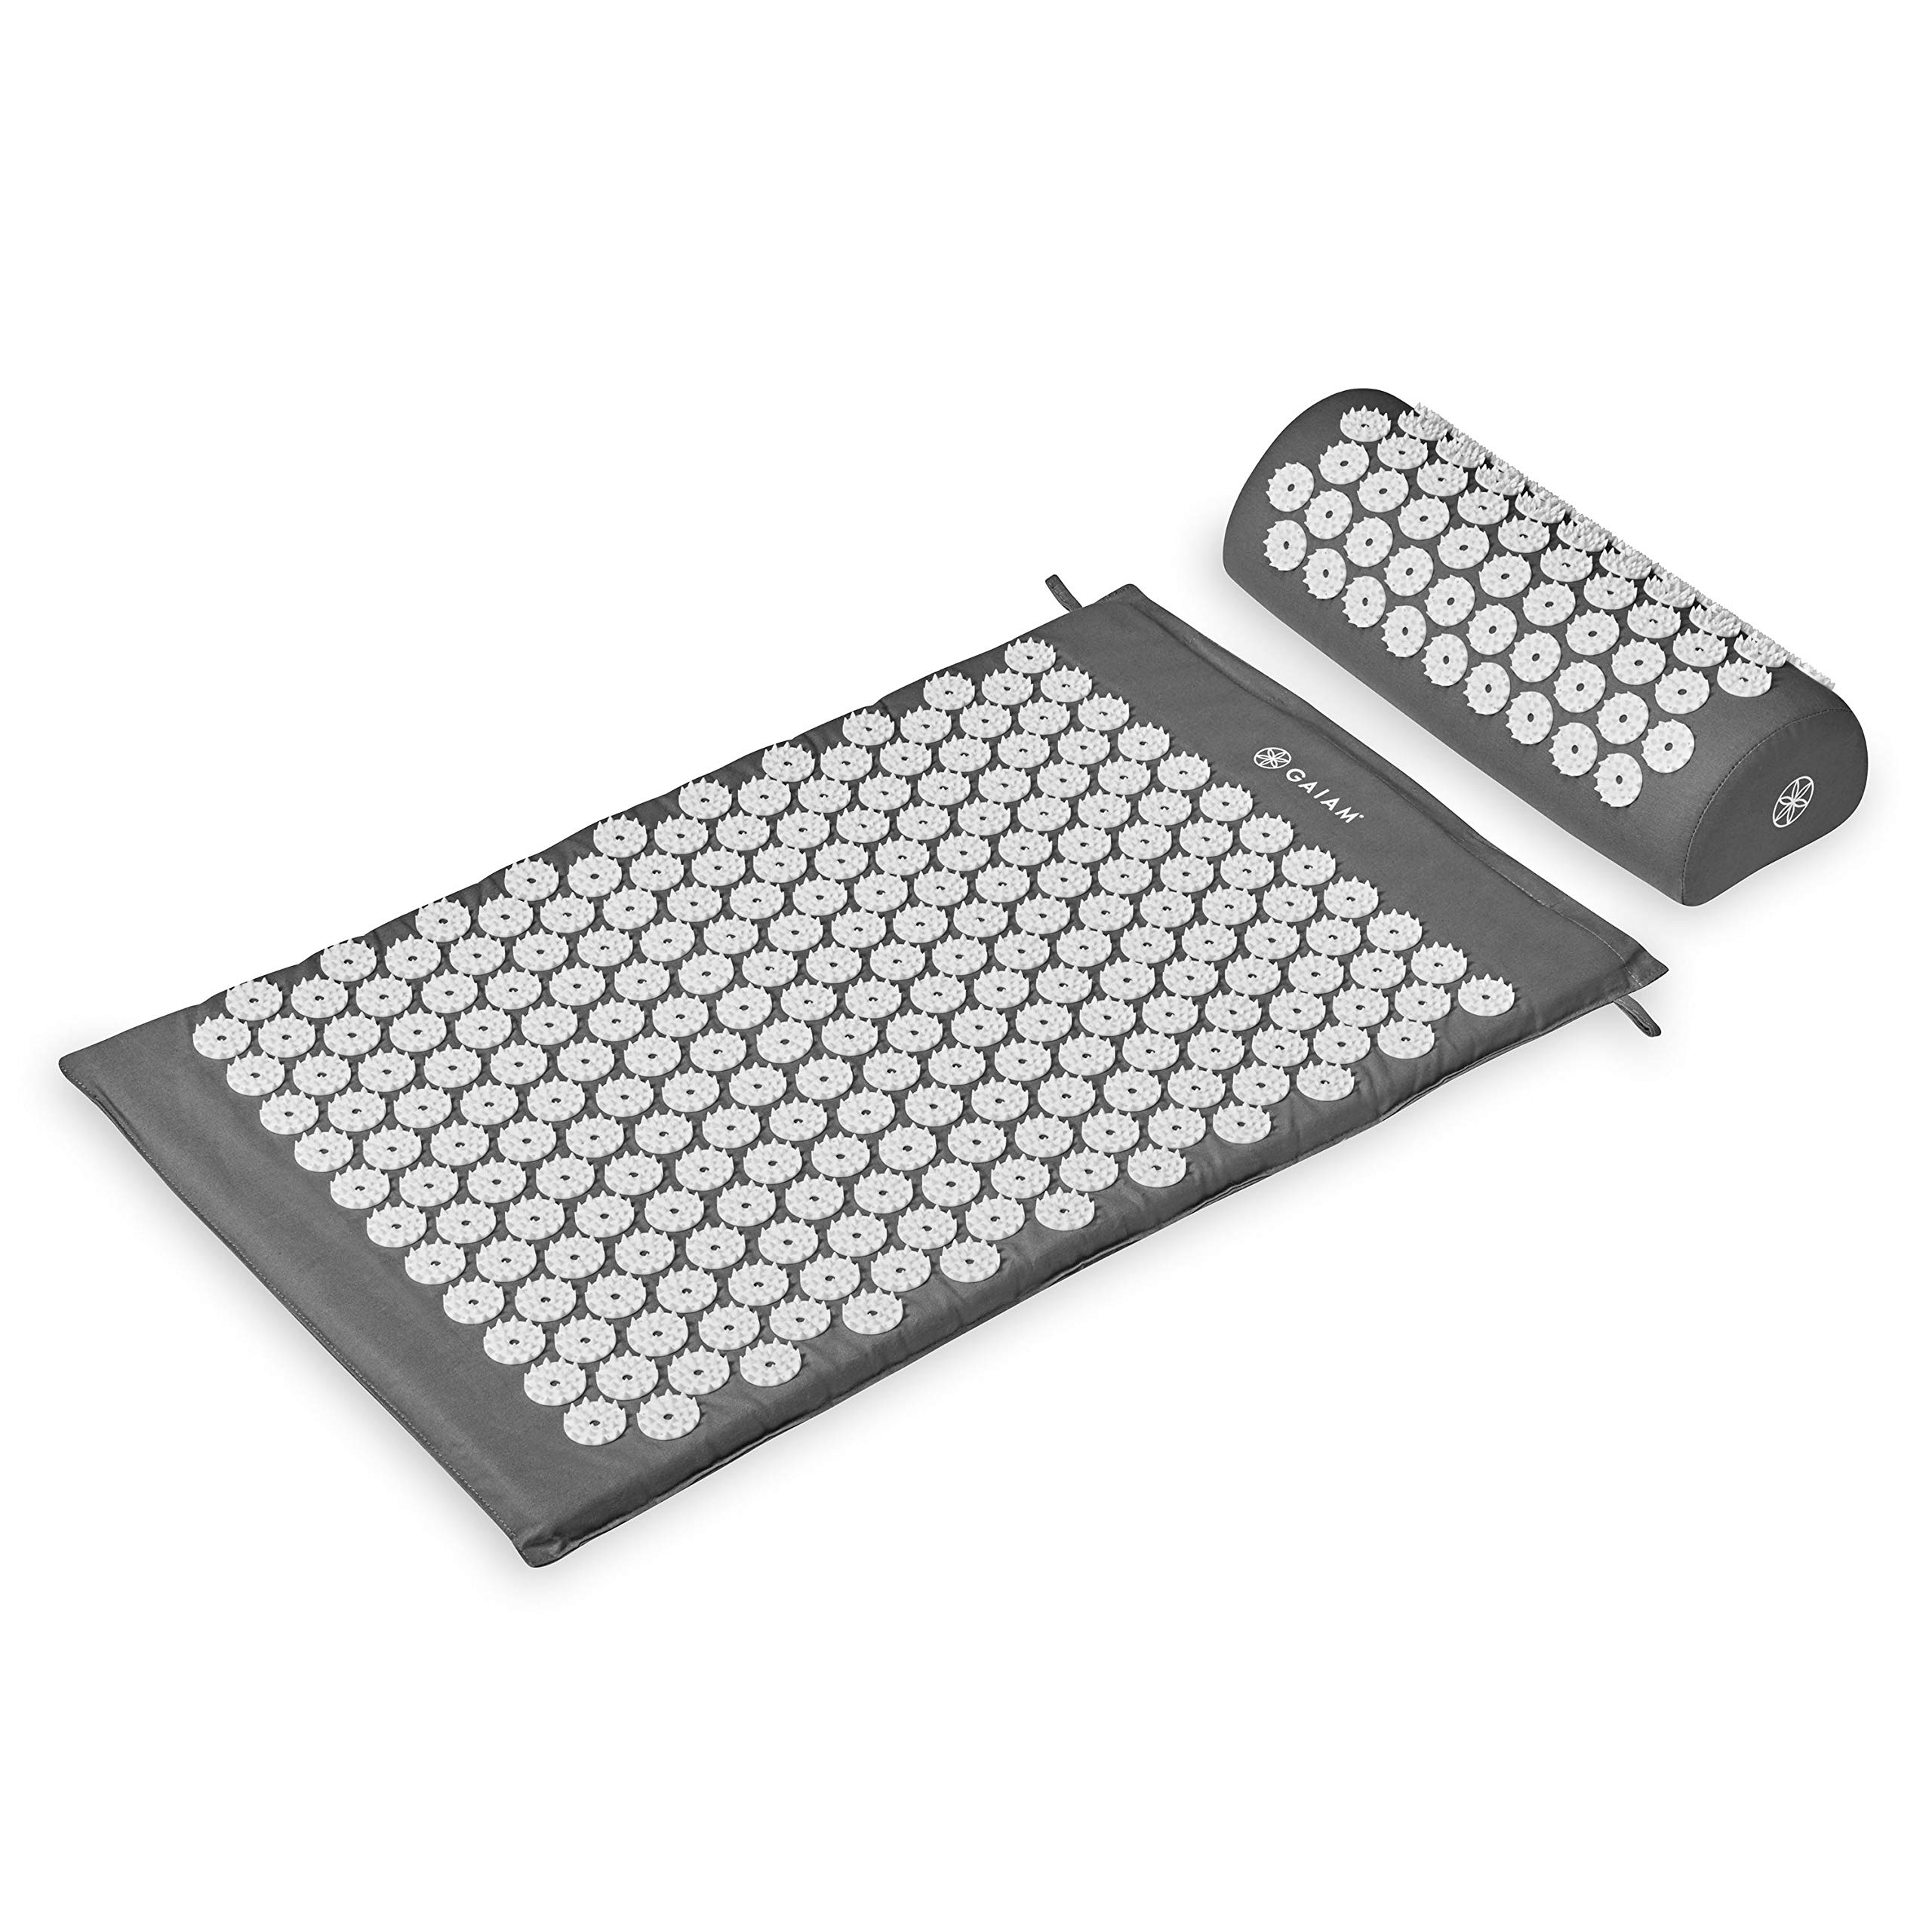 Gaiam Acupressure Mat and Pillow Set - Acupuncture Style Massage Mat & Pillow | Relief for Sciatic Nerve, Muscle Tension, Fibromyalgia, Neck, Shoulder & Back Pain, Migraine & Headaches and Insomnia by Gaiam